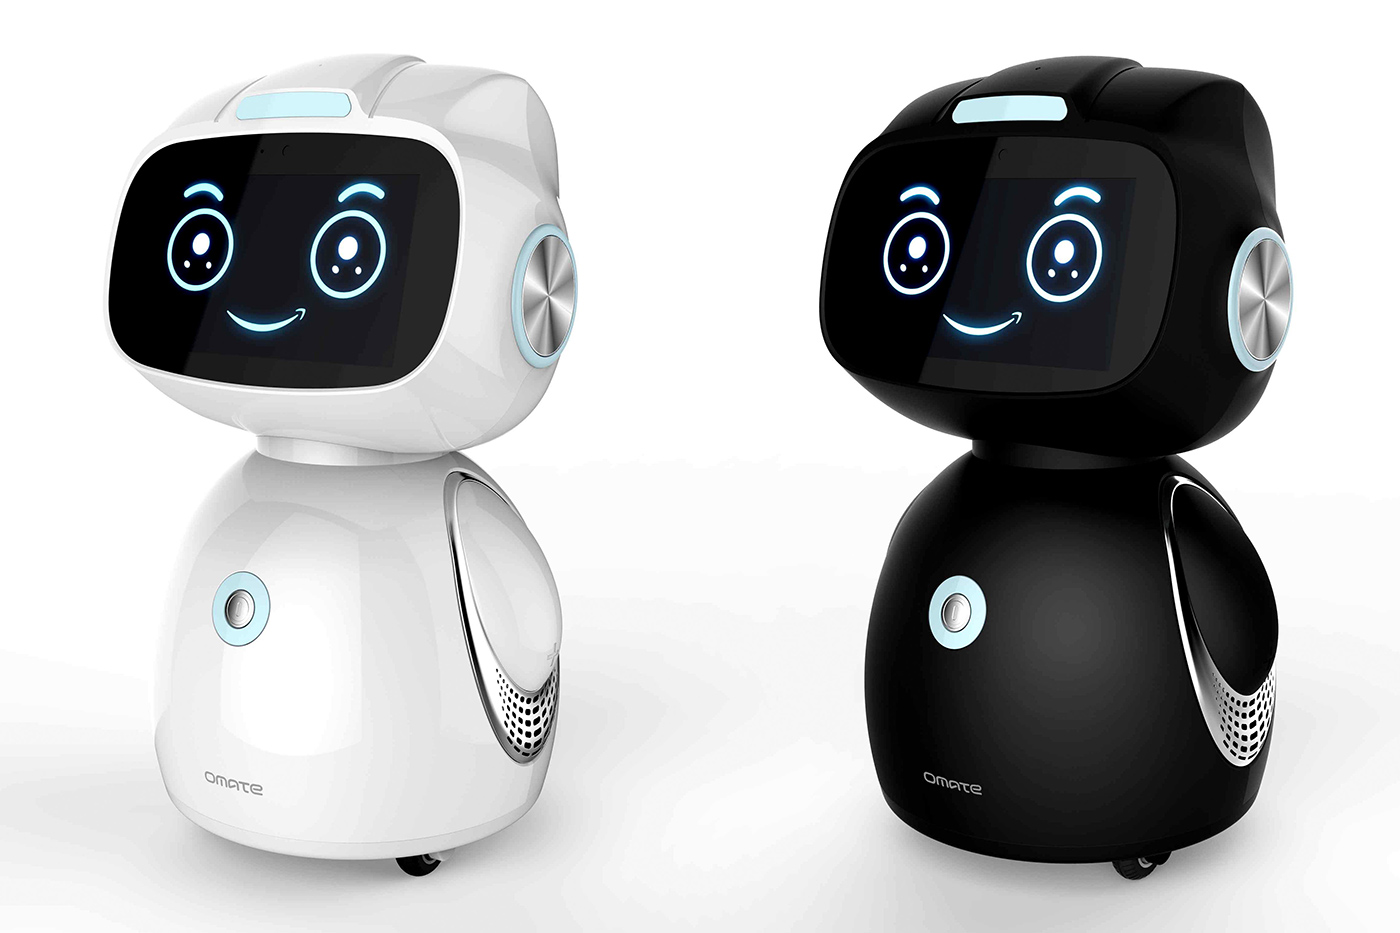 Image result for Robot Alexa amazon